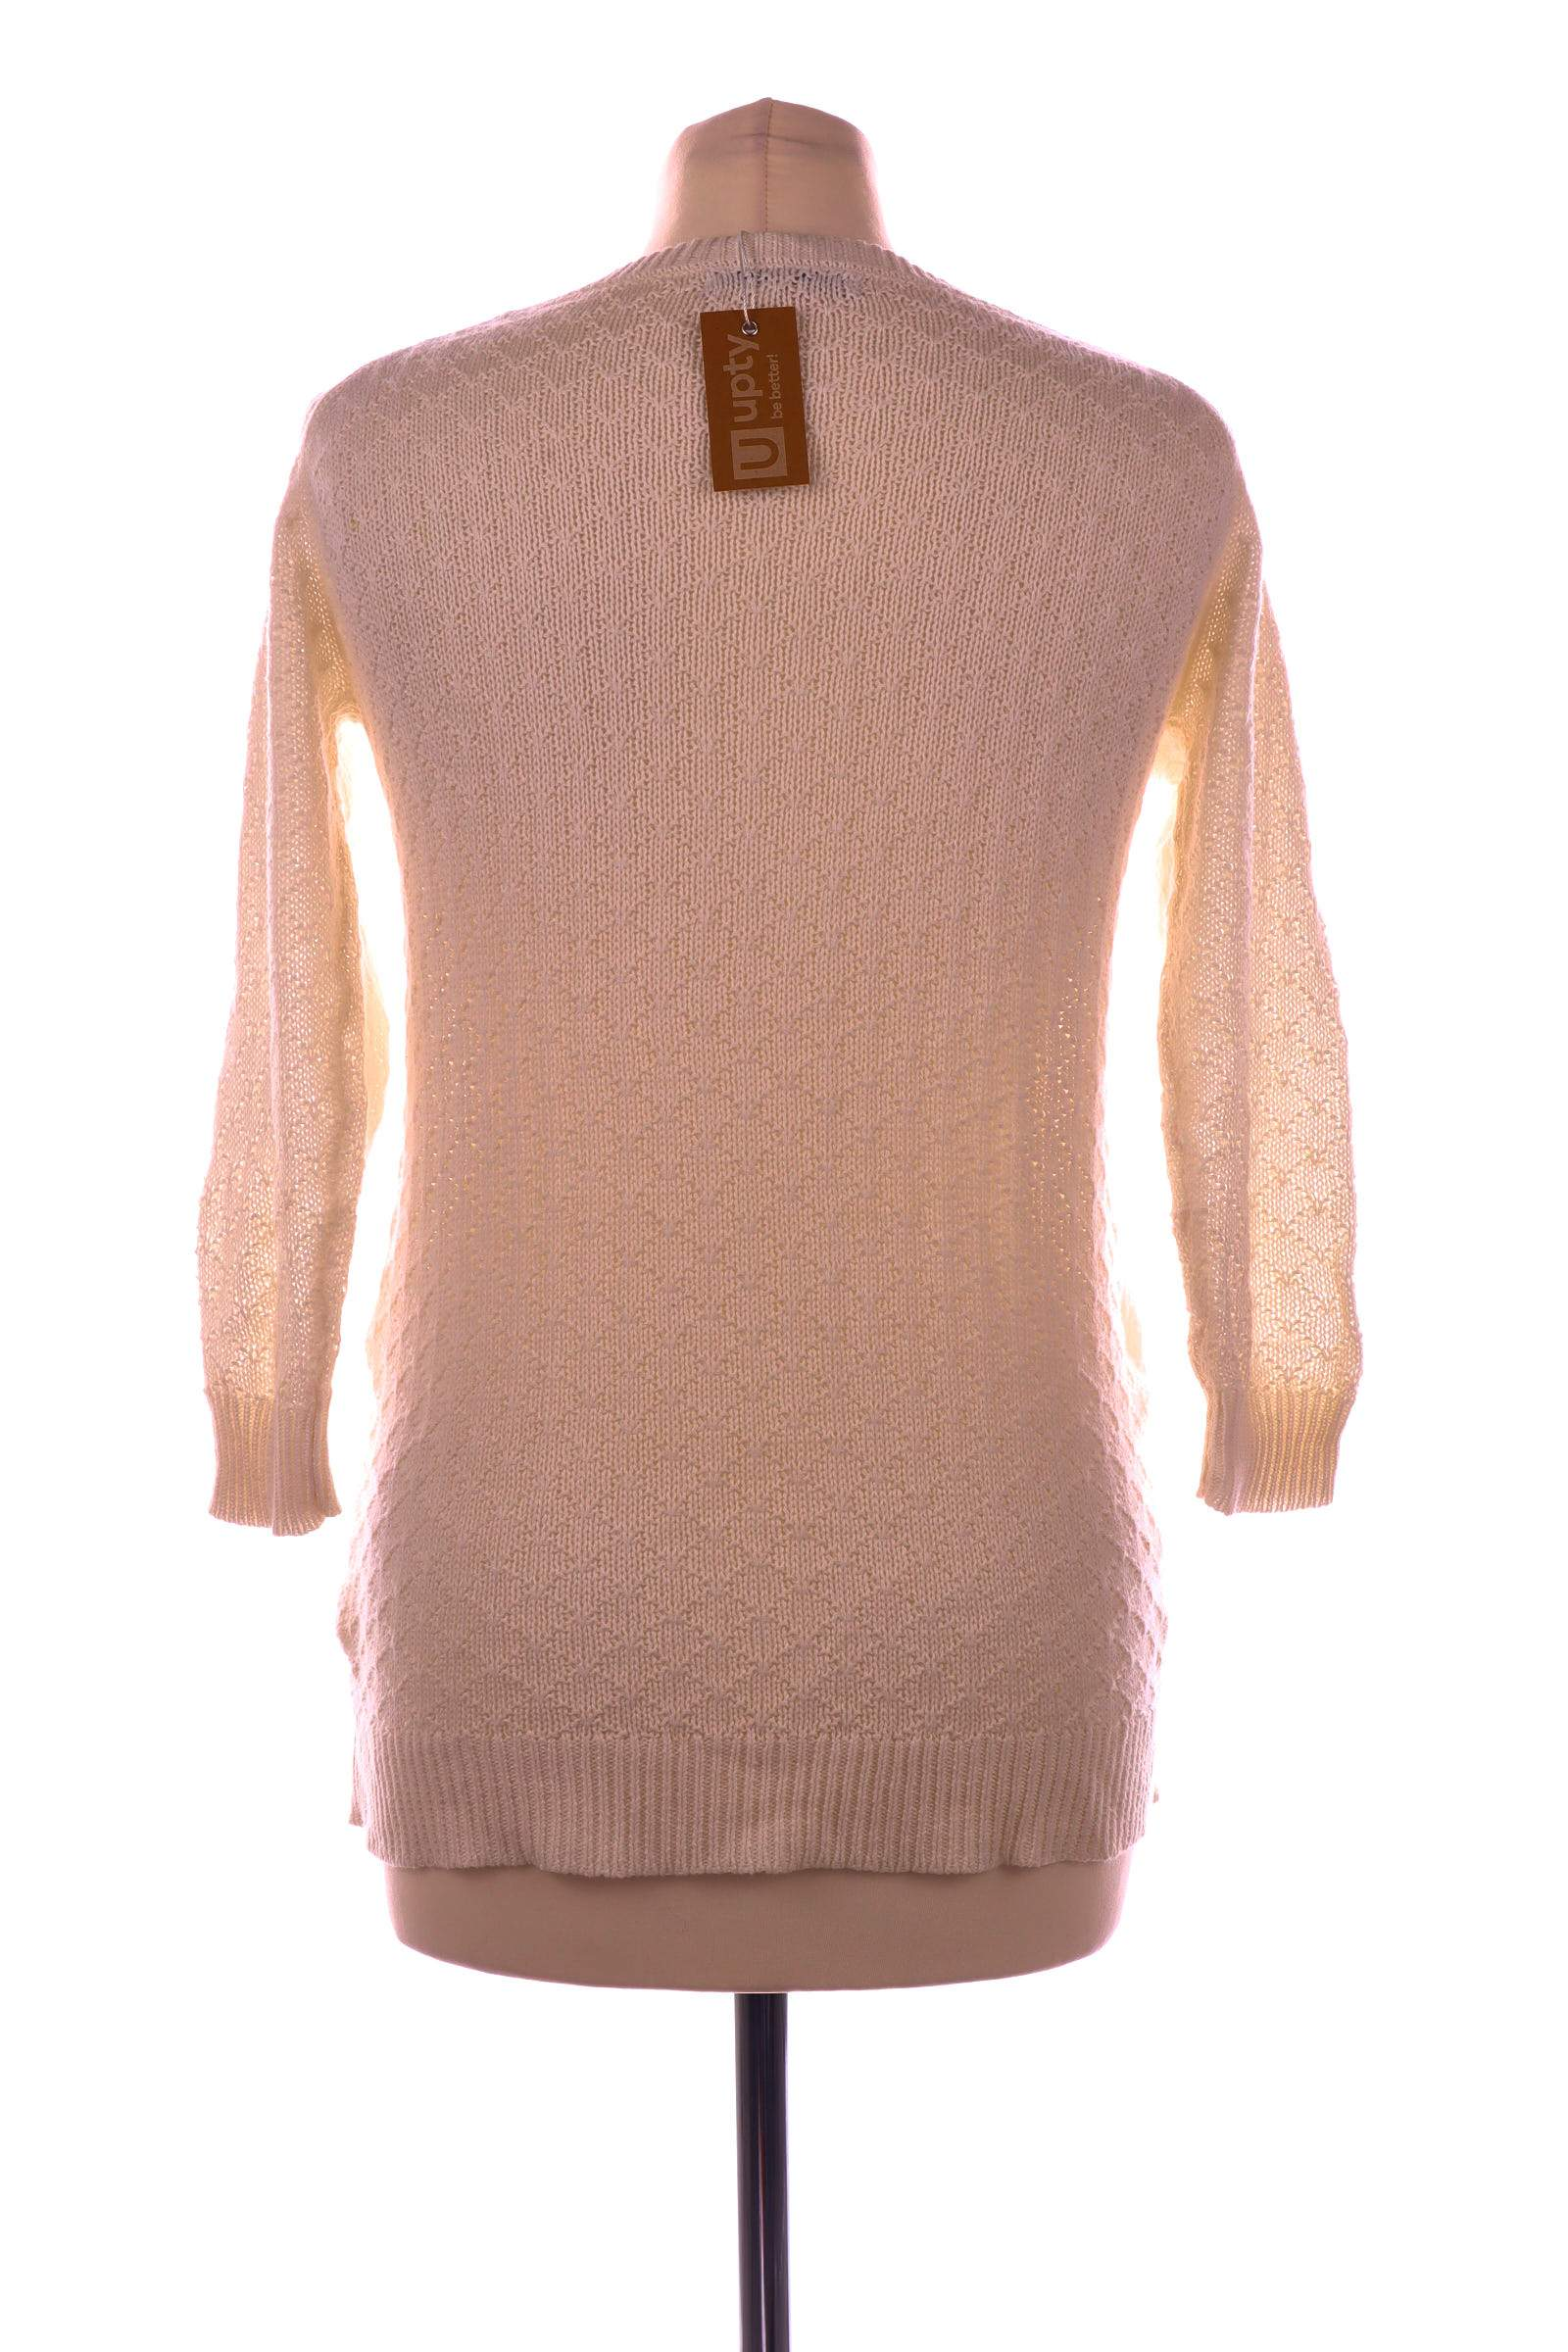 Stradivarius White Sweater